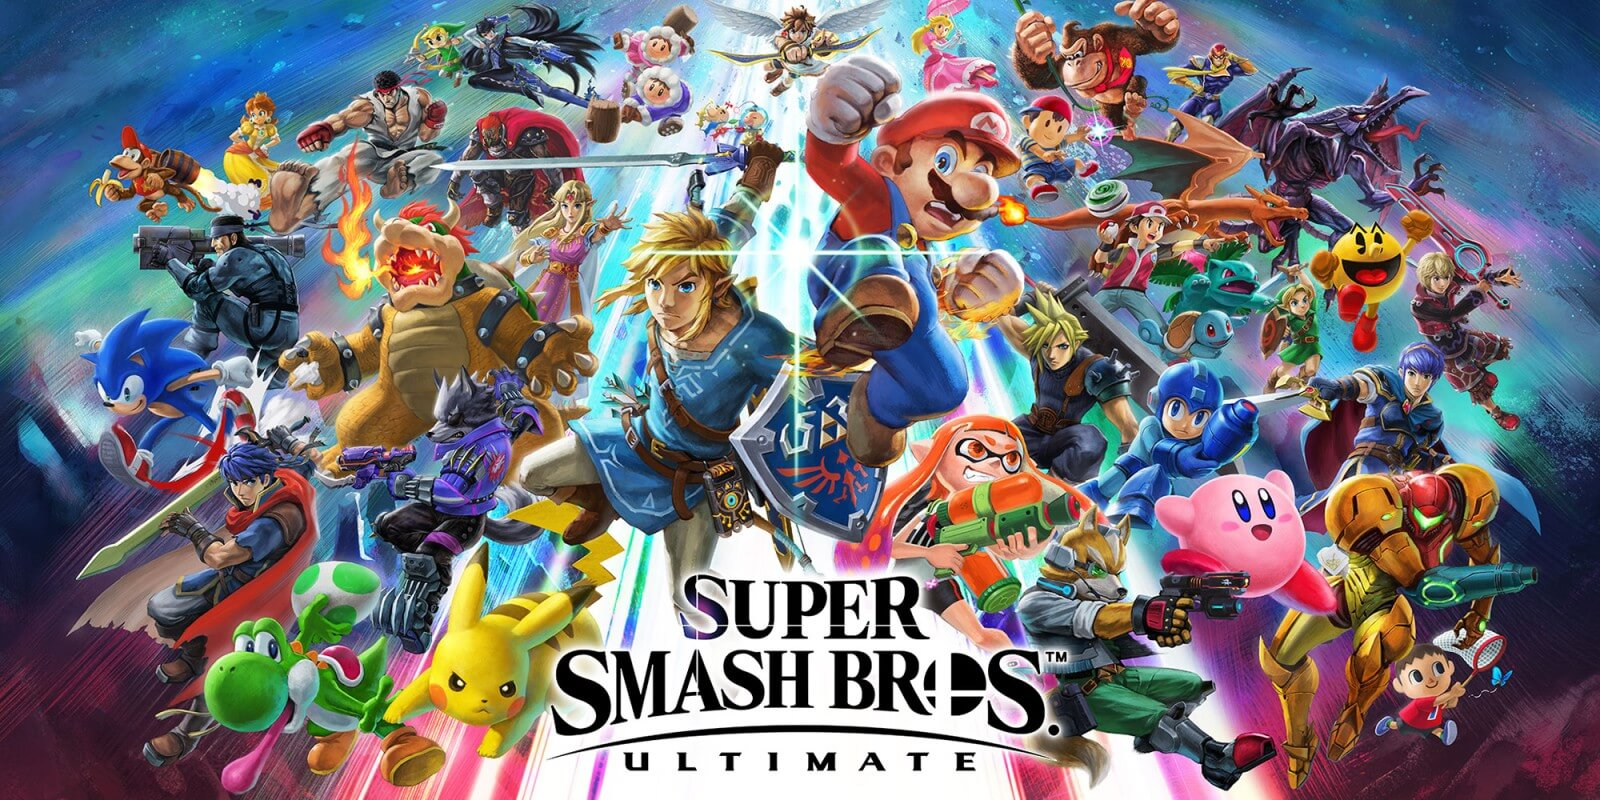 Foto de Super Smash Bros Ultimate tem novo personagem anunciado!